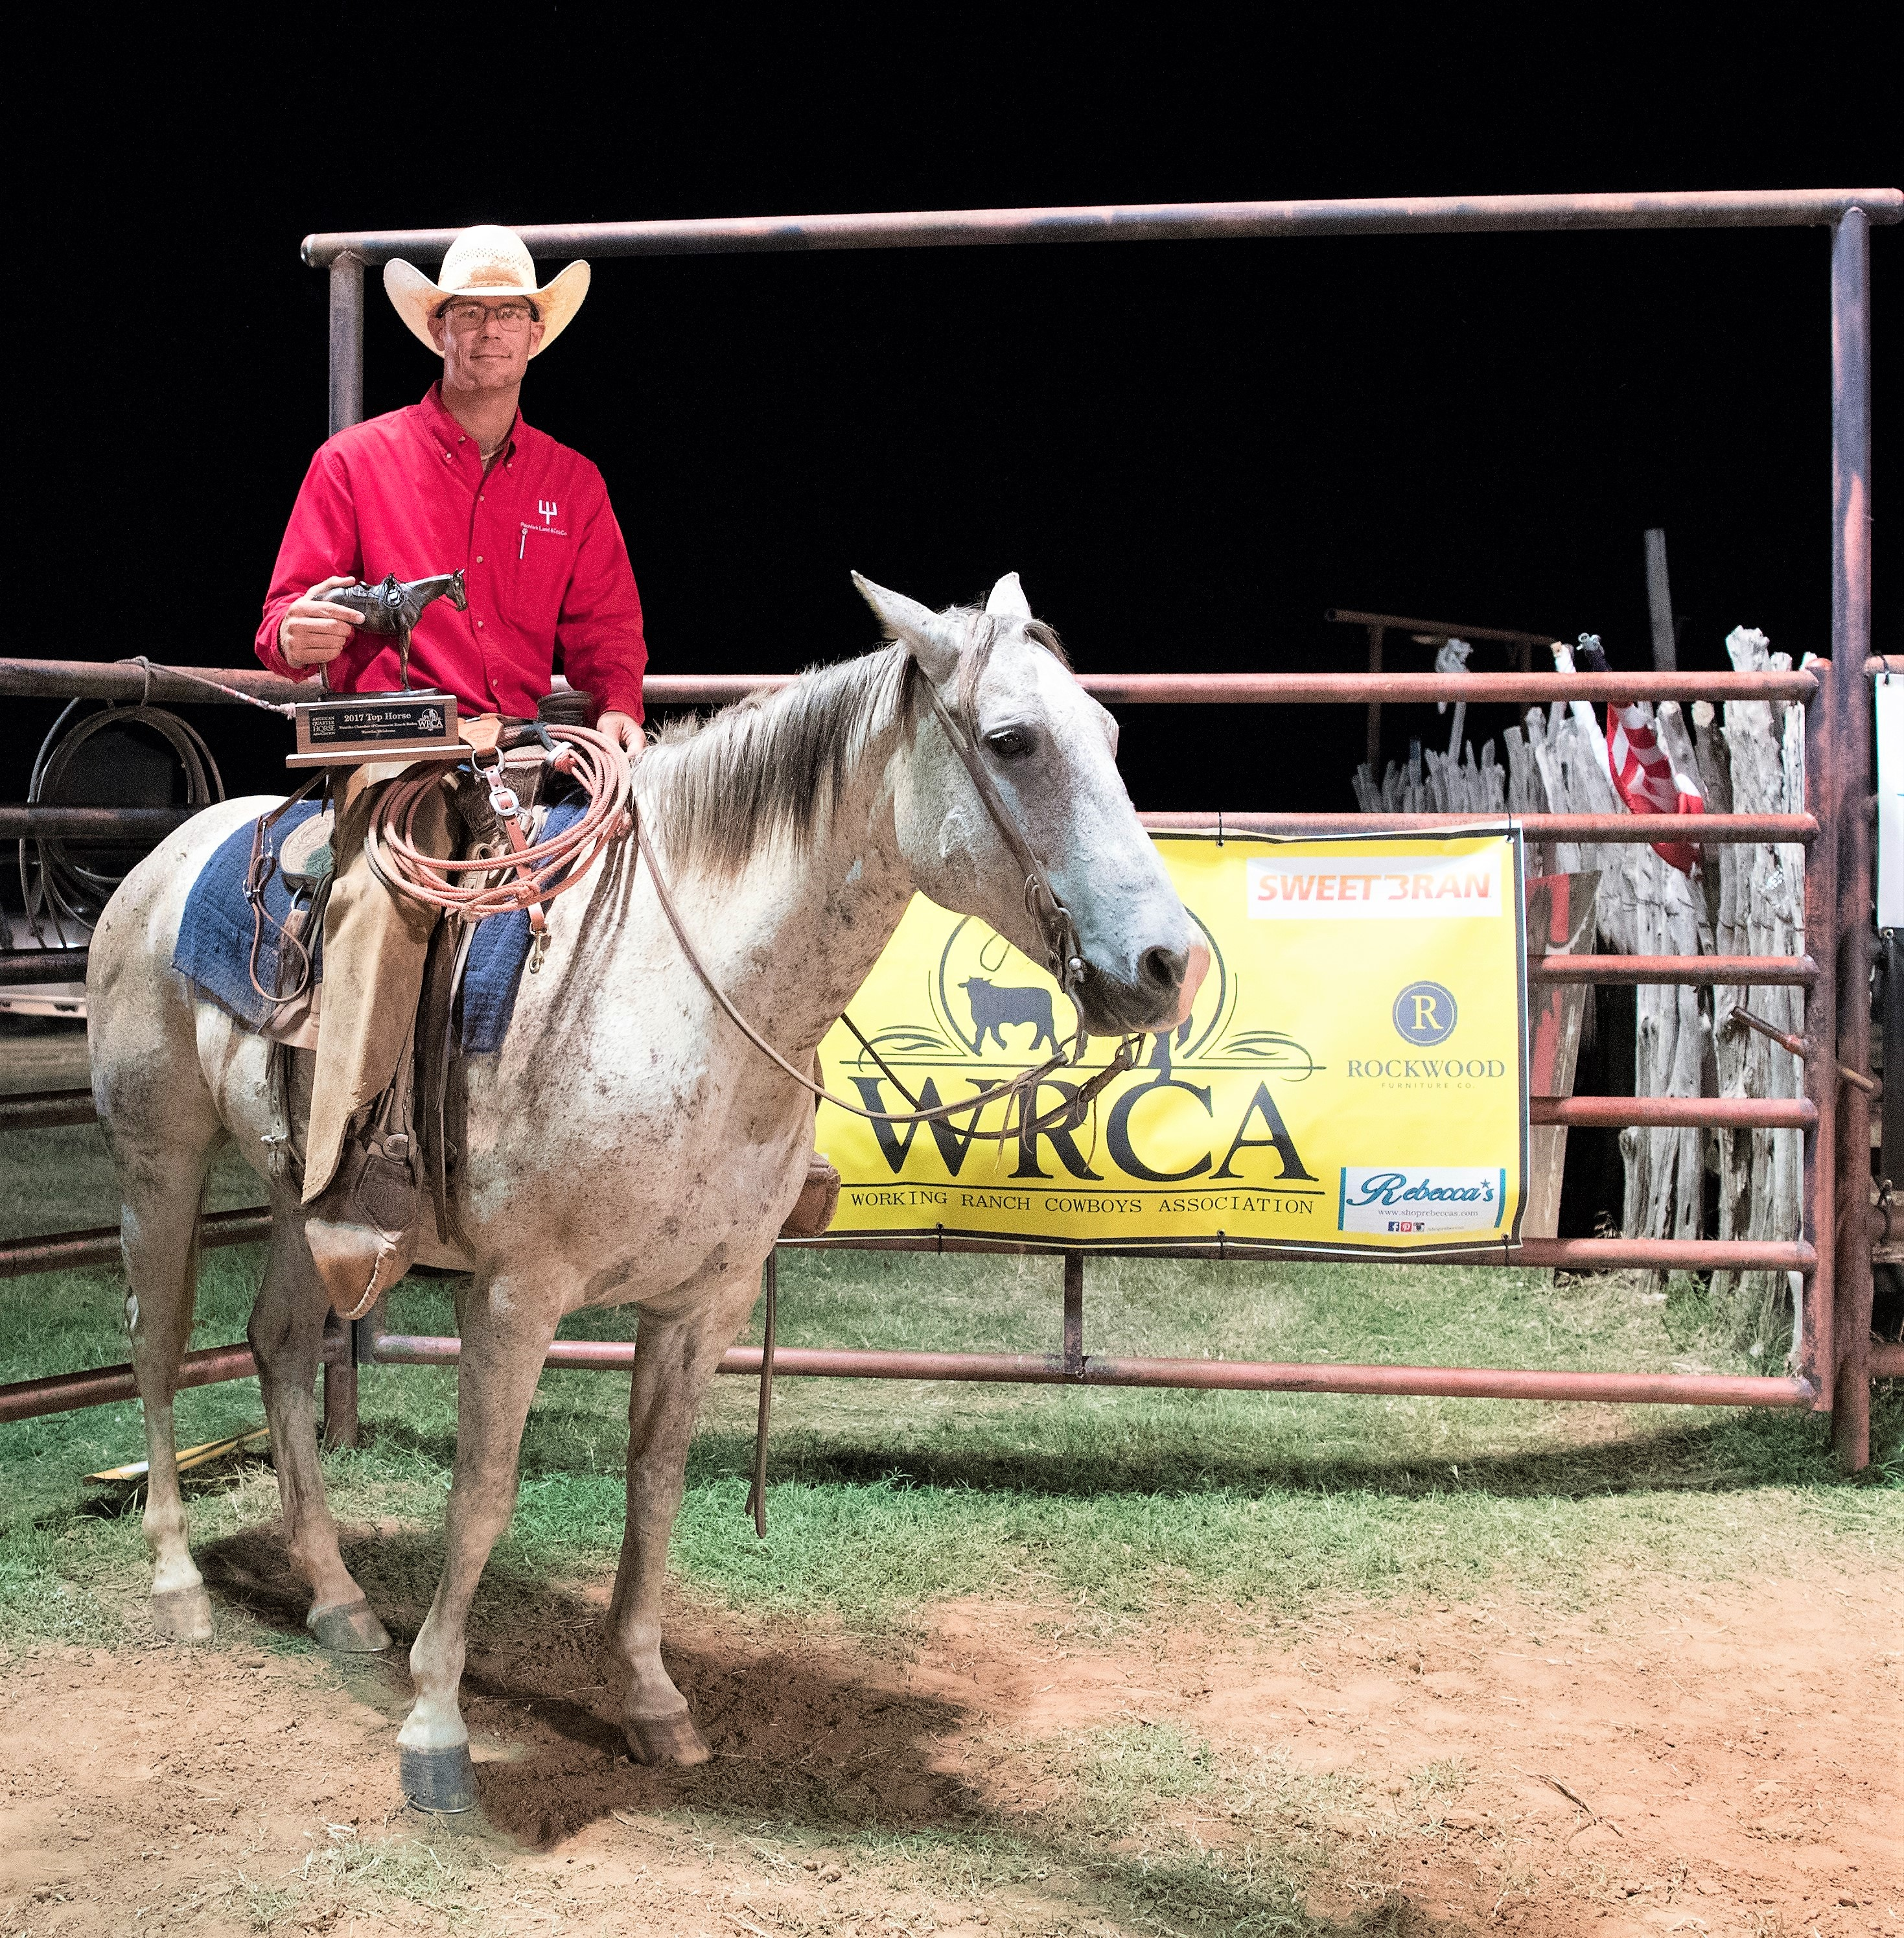 2017 Waurika Chamber of Commerce Ranch Rodeo Top Horse: Cats Hired Gun Ridden By: K.C. Green, Pitchfork Cattle Operations LLC Owned By: Pitchfork Cattle Operations LLC